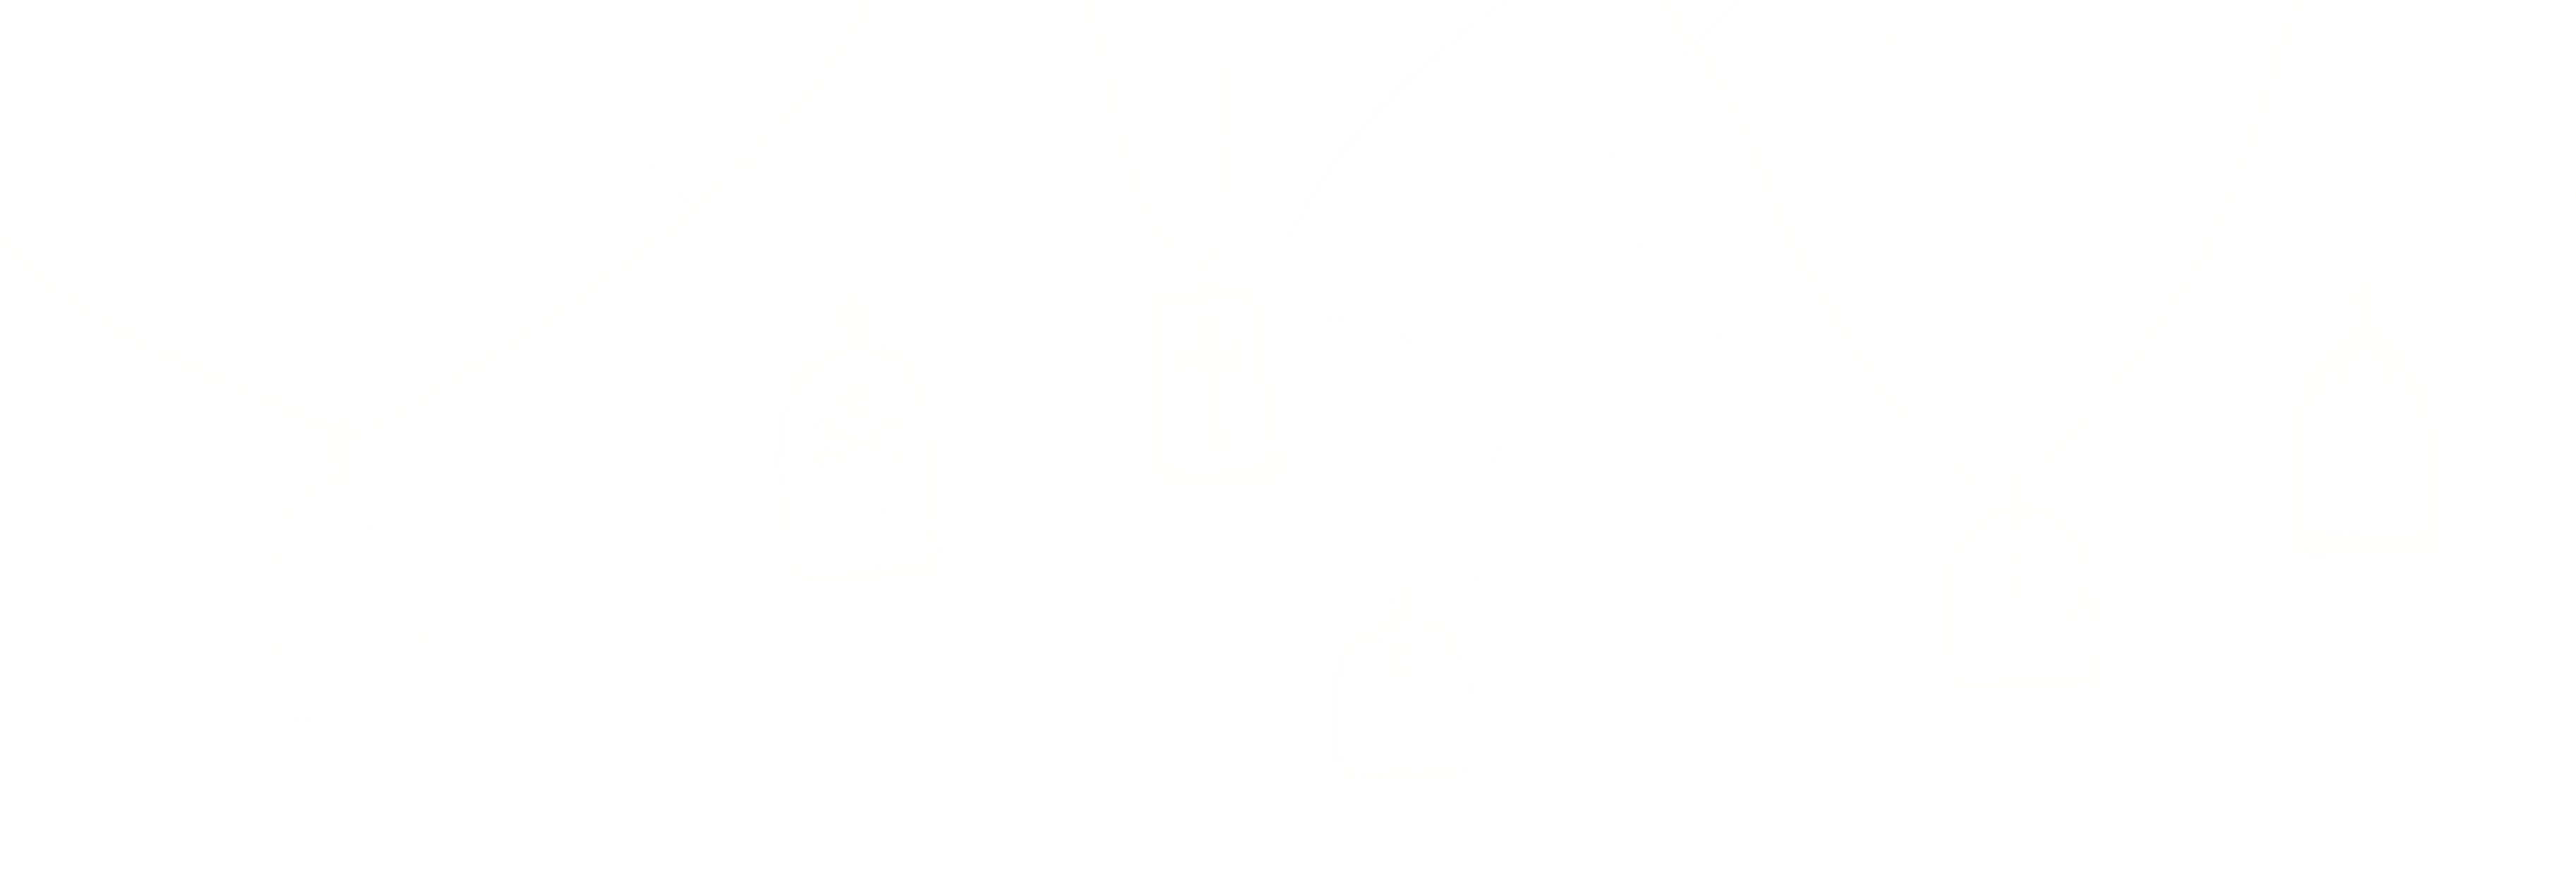 White illustration of tiny simplified gravestones on chains